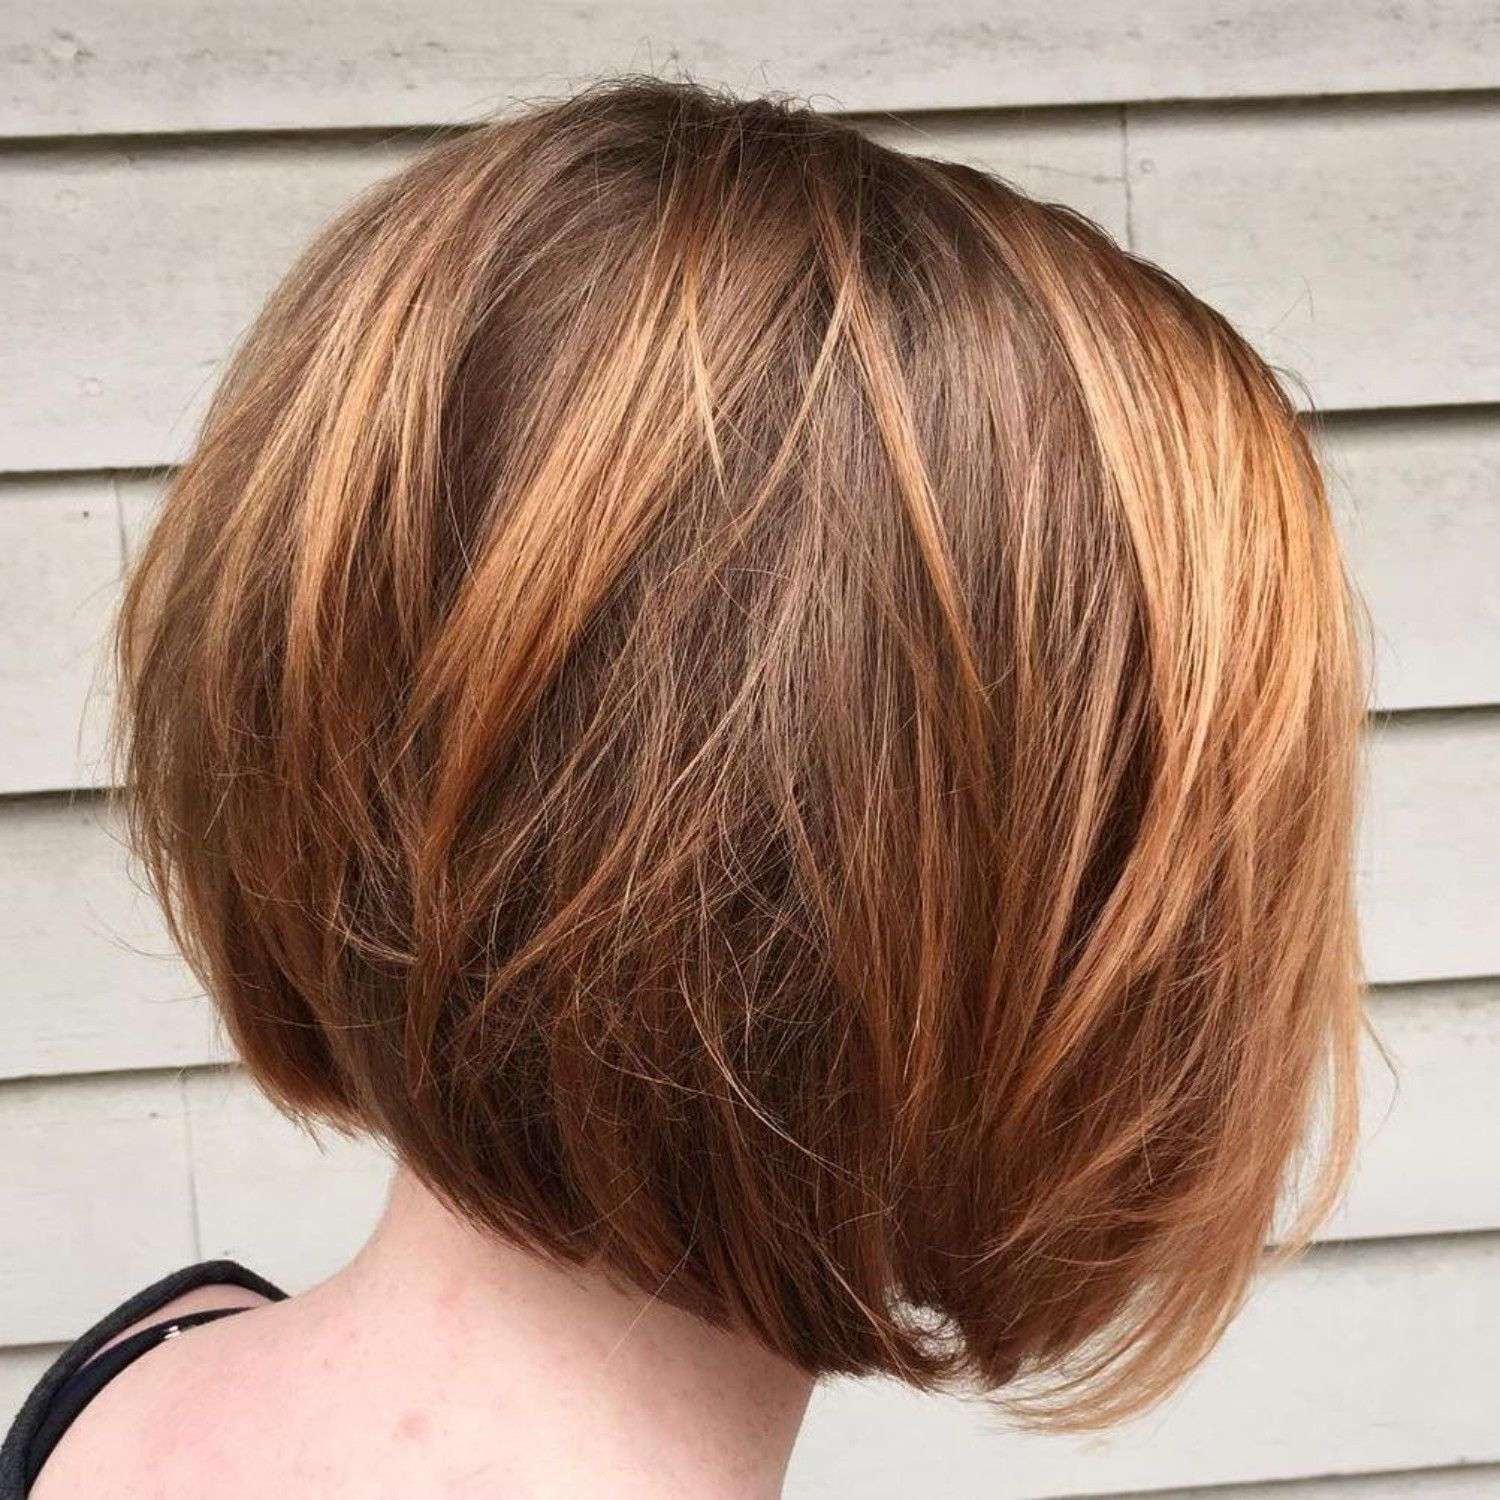 mindblowing short hairstyles for fine hair in pampering